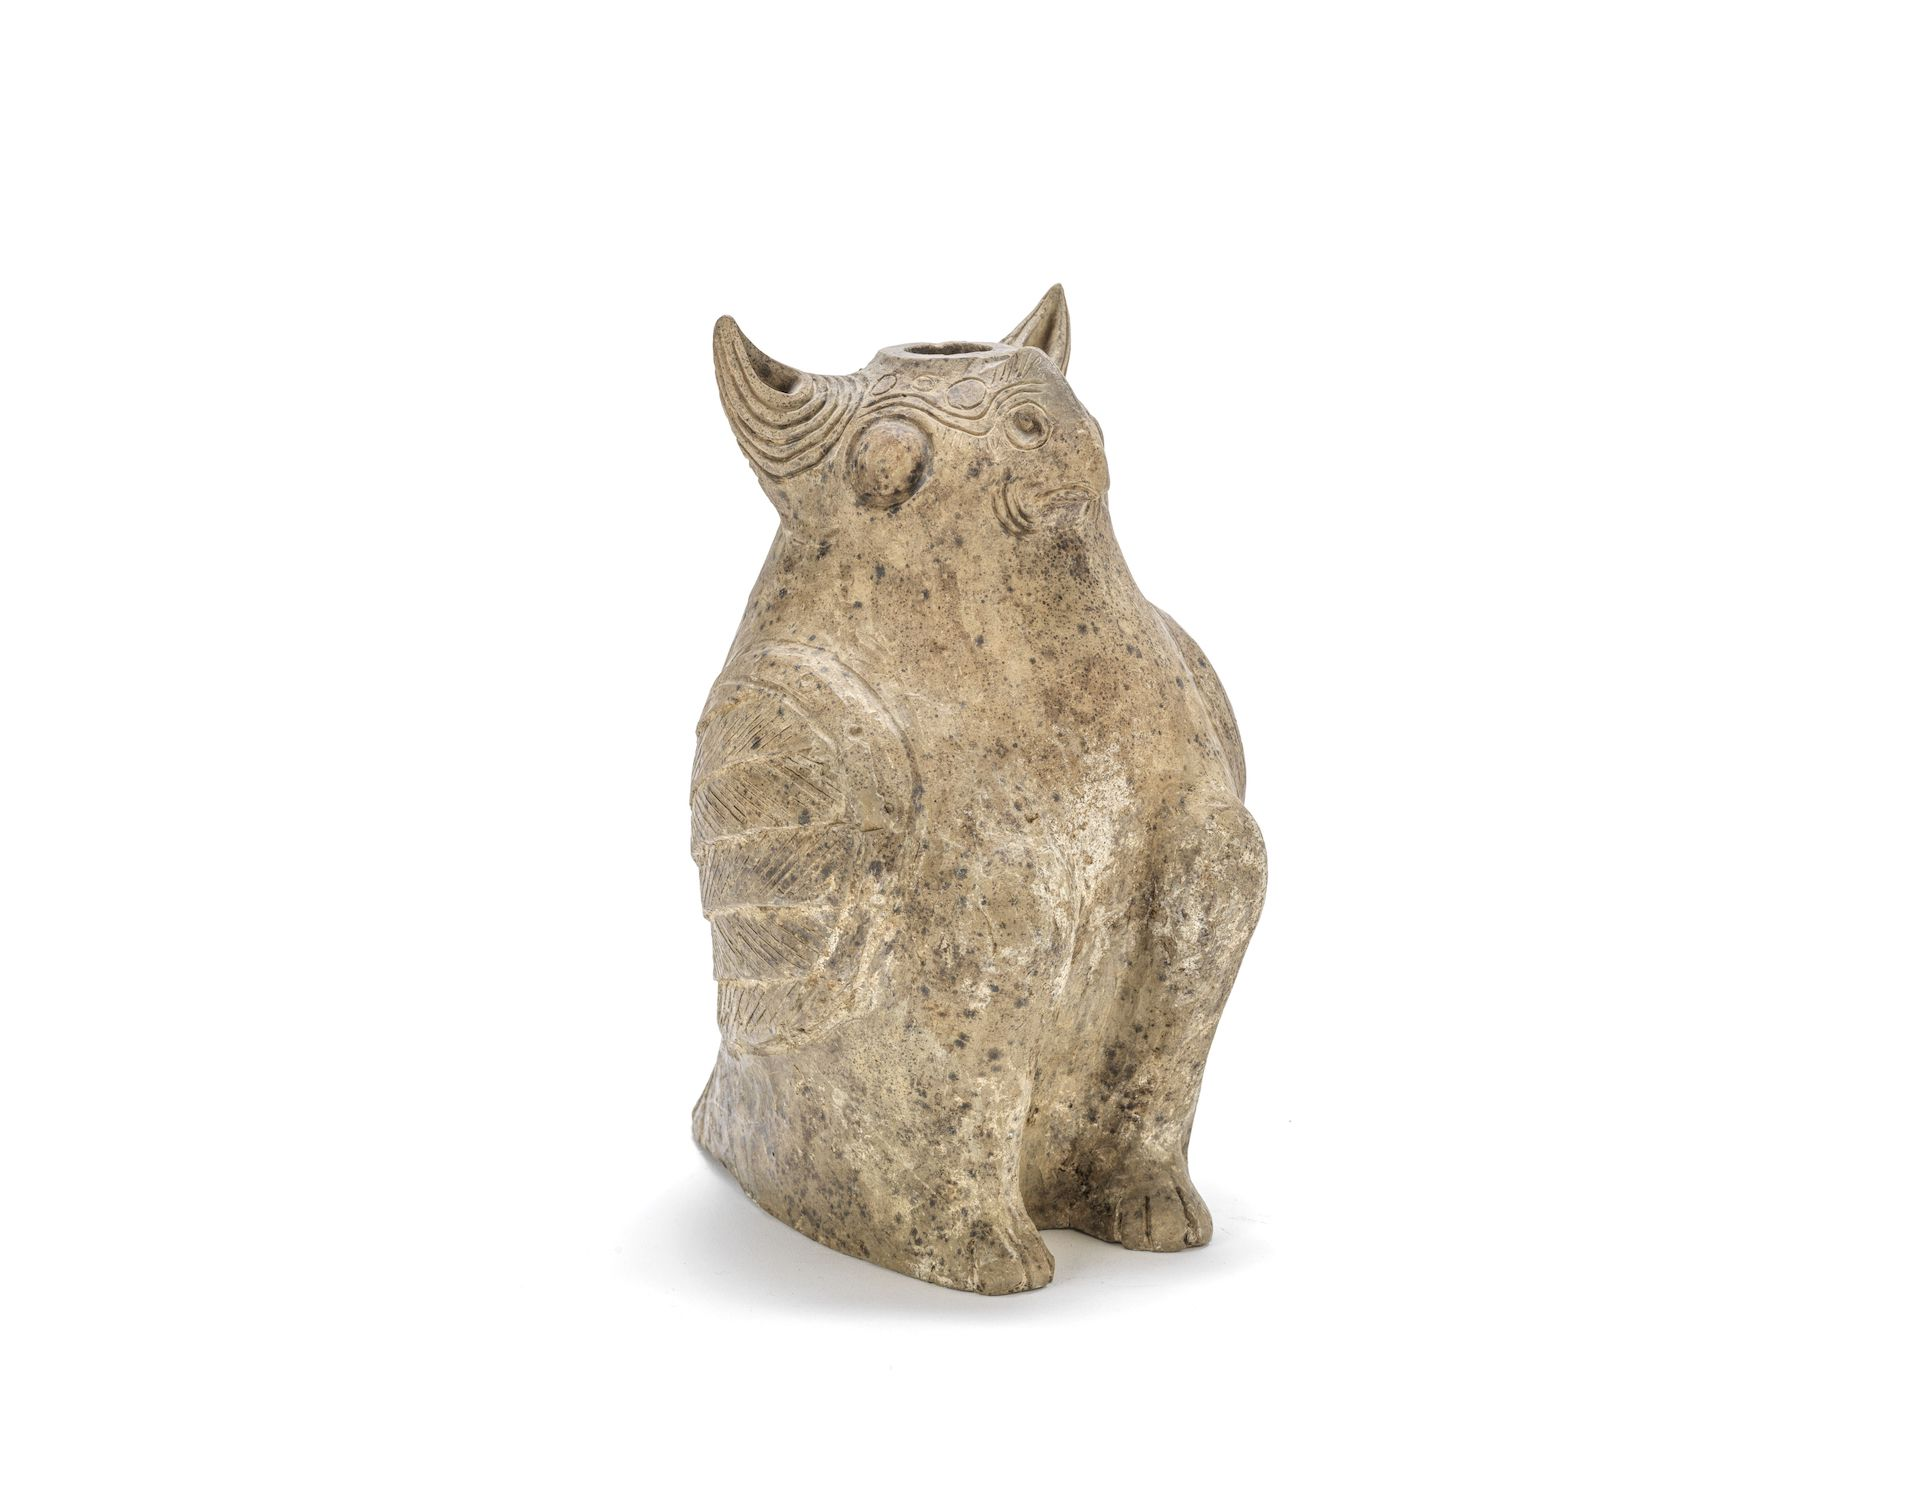 A large and rare grey pottery model of a long-eared owl, Western Han Dynasty. Modelled as a plump seated owl with long pricked ears and a crest rising from the short beak, with incised linear designs, a circular aperture to the top of the head, the wings folded back neatly against the body. 28.5cm. (11.1/4in) high. £3,000-5,000